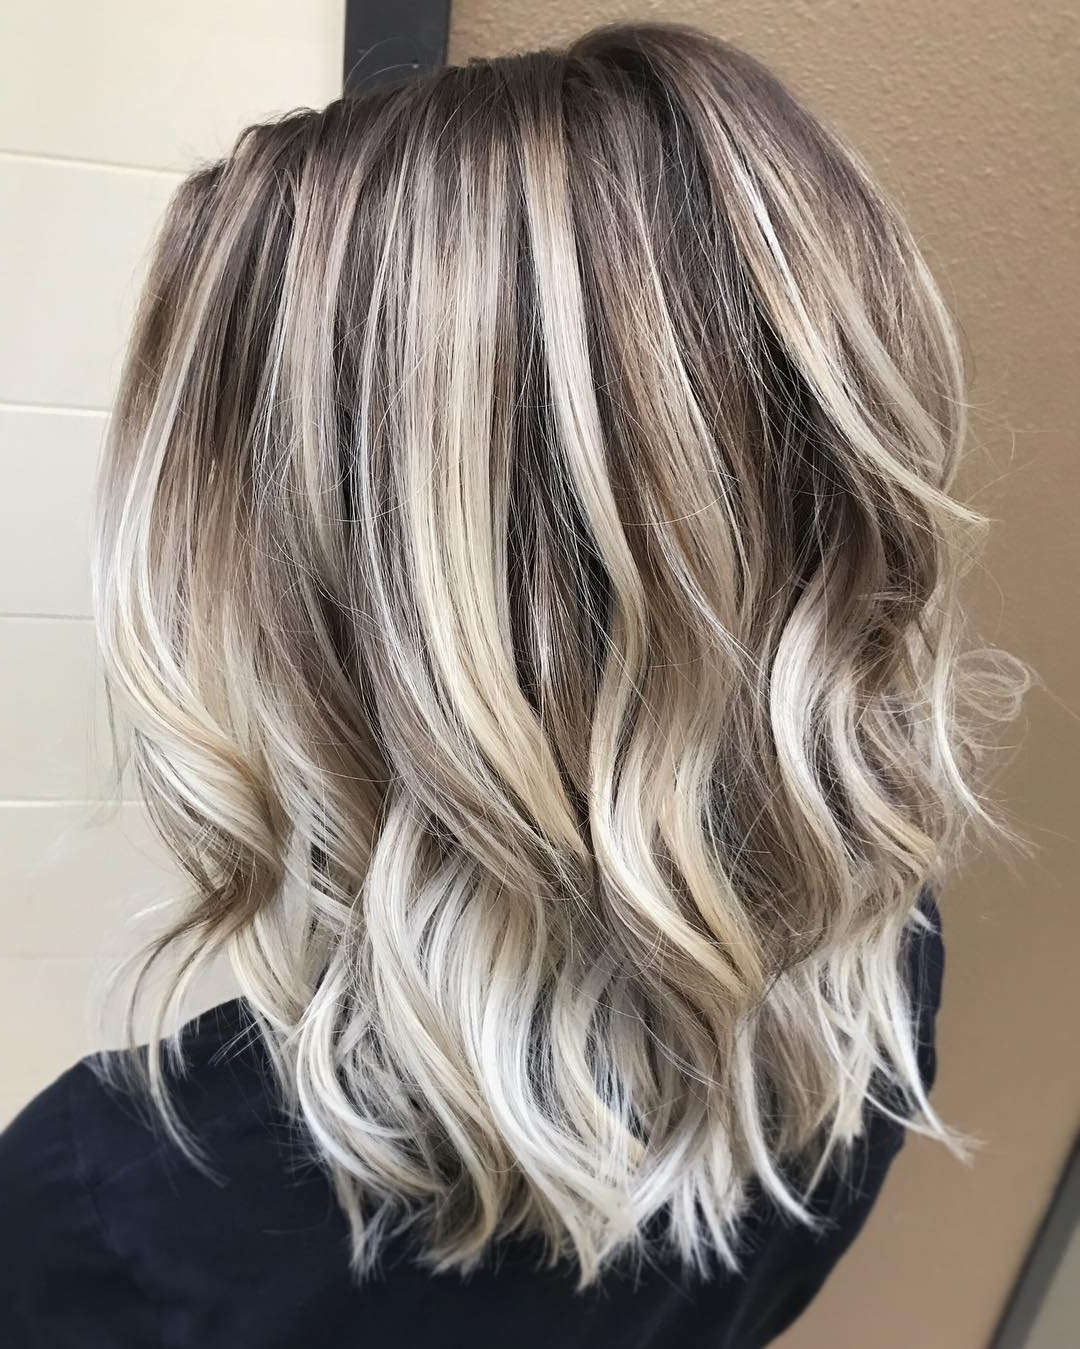 Trendy Fade To White Blonde Hairstyles Throughout 10 Ash Blonde Hairstyles For All Skin Tones, 2018 Best Hair Color Trends (View 7 of 20)